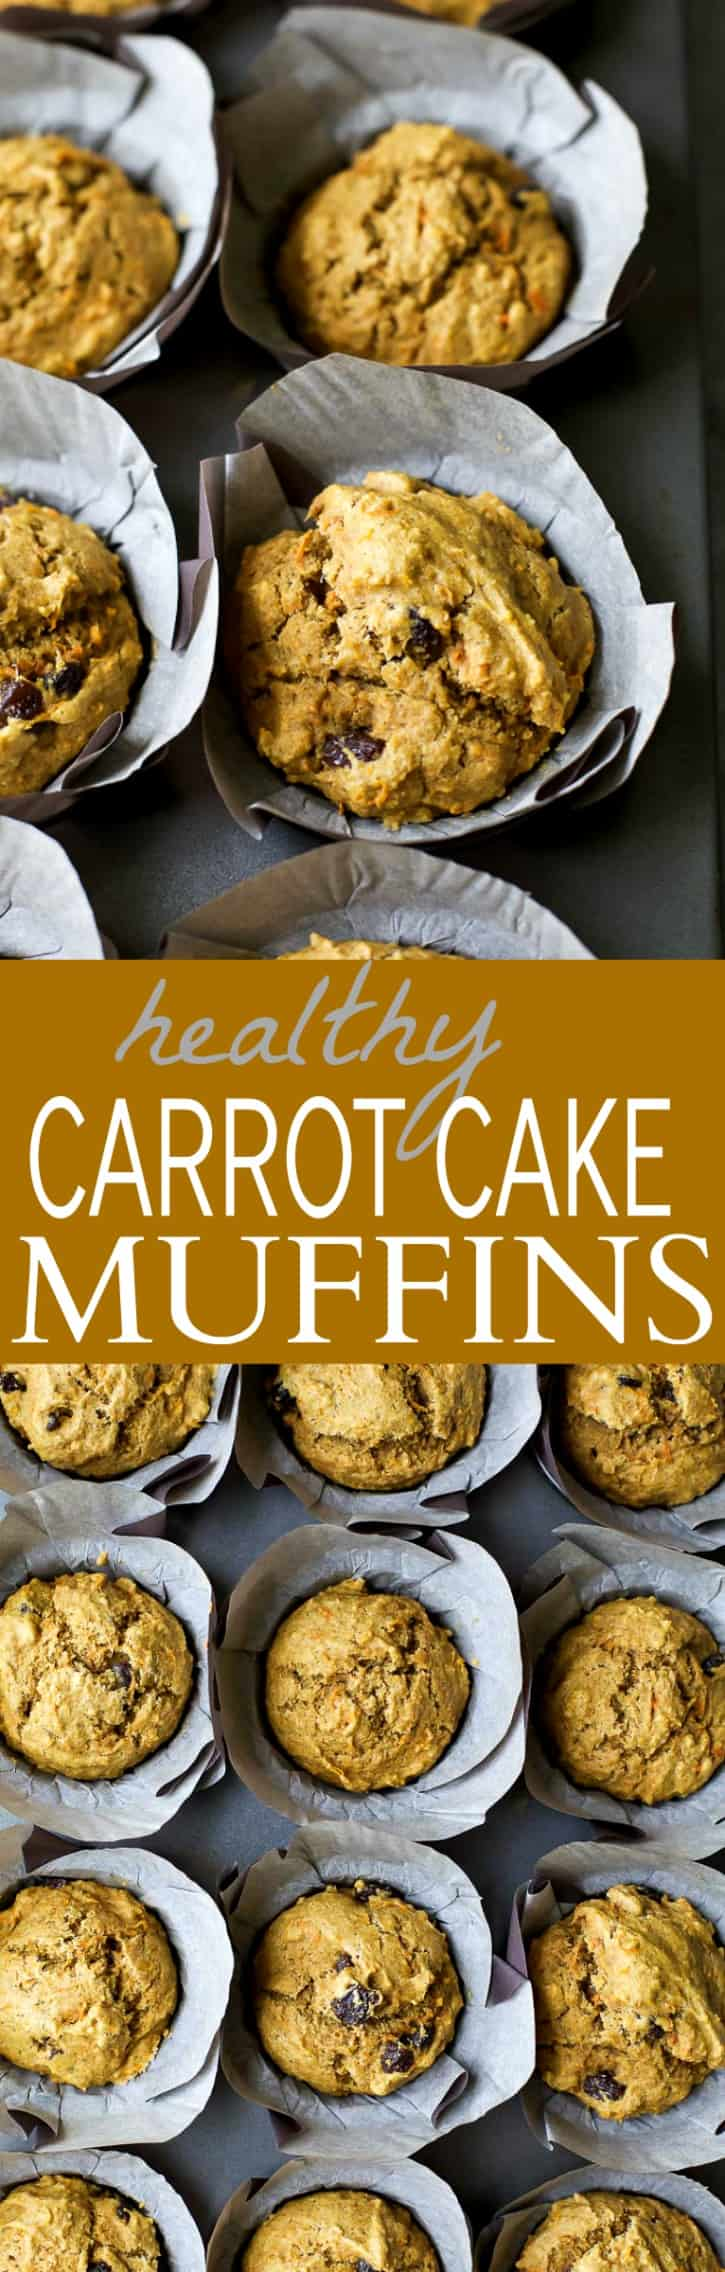 Healthy Carrot Cake Muffins sweetened with applesauce and maple syrup. These Muffins are insanely moist and taste just like carrot cake but without all the guilt! Perfect for a grab'n go breakfast or afternoon snack!